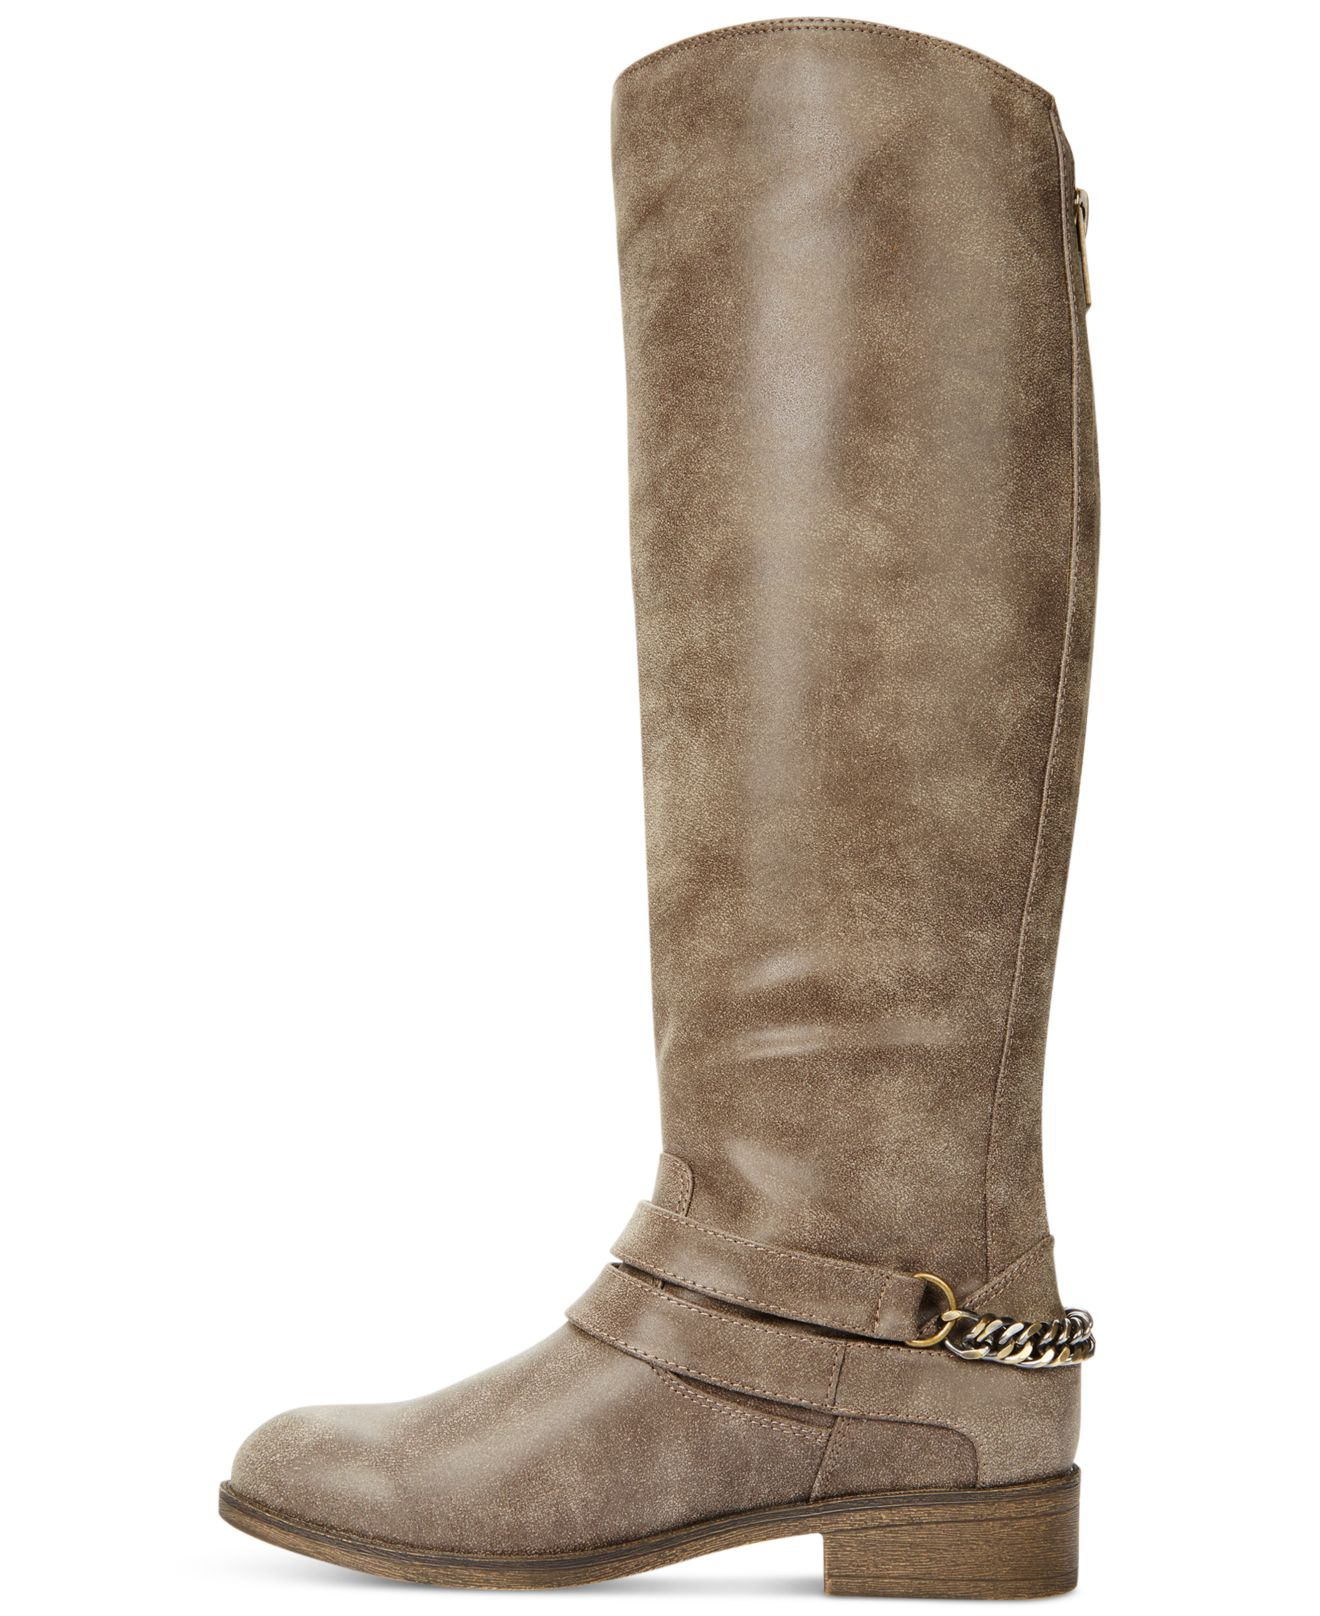 BareTraps® Oria tall boots offer a man made upper with an elastic back, zipper closure, and a three button detail finish. The insole is padded and it has a rubber outsole. The shaft height is , heel height is and it has a circumference.